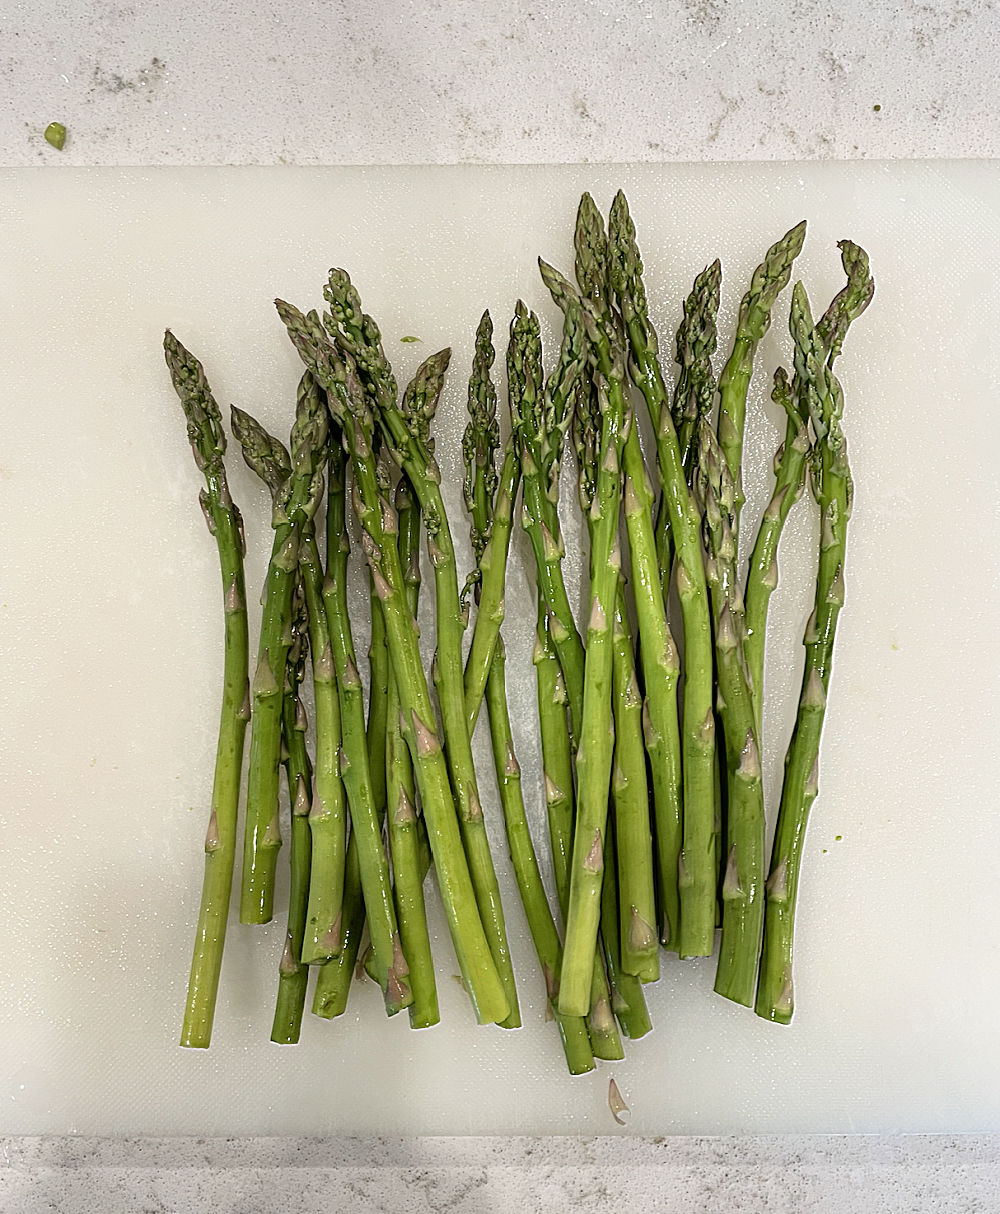 trimmed asparagus on a cutting board